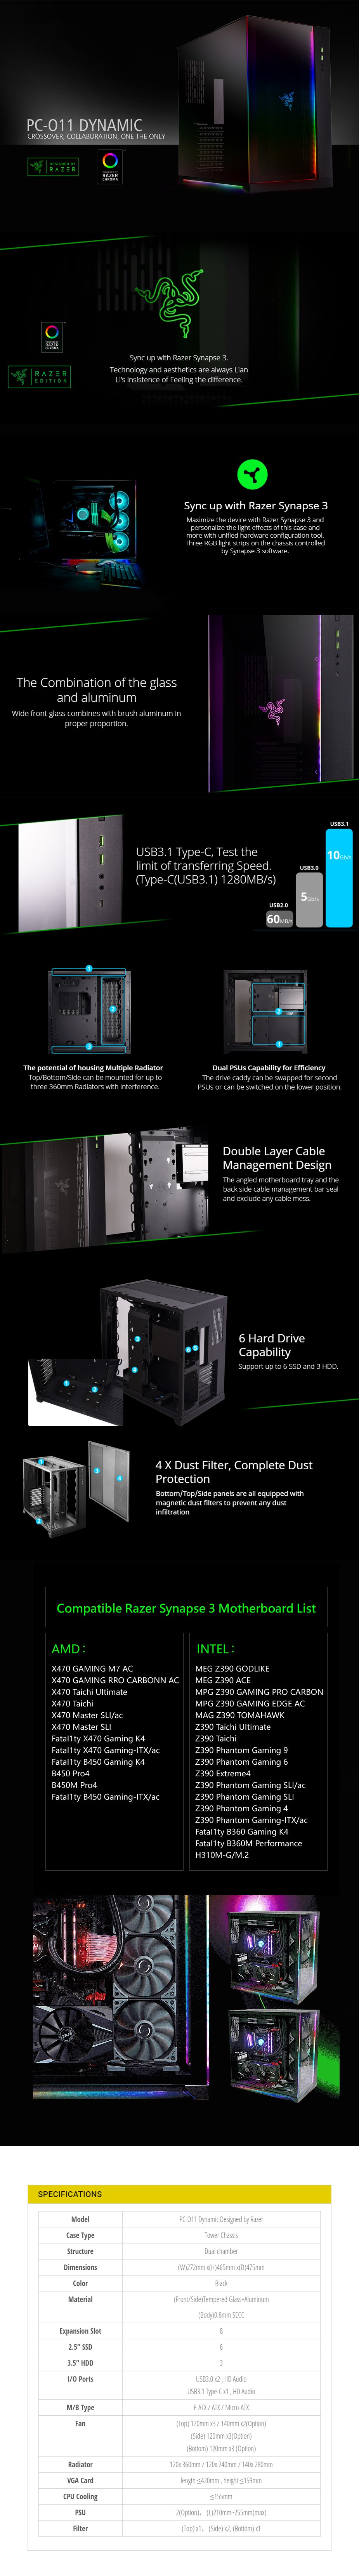 Lian-Li PC-011 Dynamic RGB Tempered Glass Mid Tower Case - Razer Edition - Desktop Overview 1